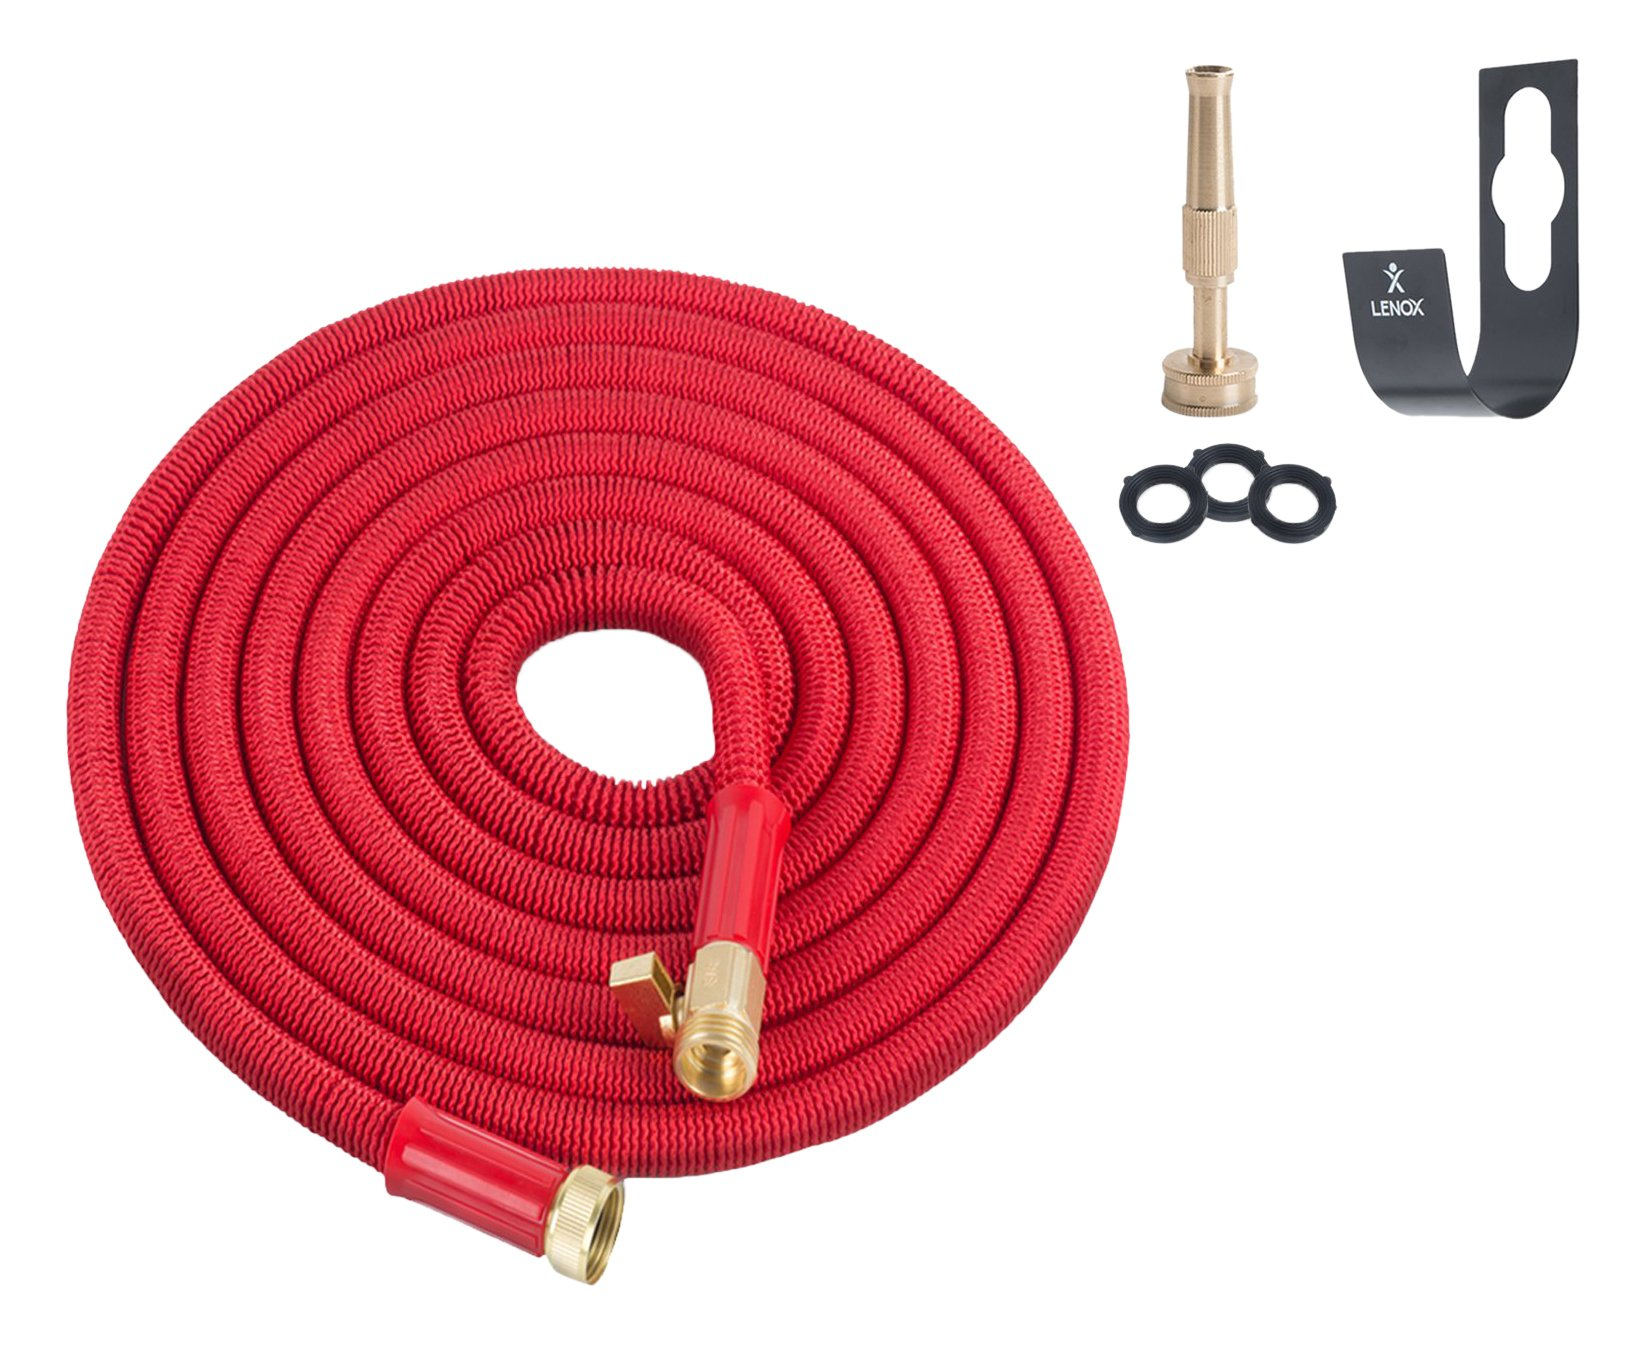 GARDEN FLOW Expandable 25' Hose Solid Brass On/Off Valve Connectors Bundle Includes Free Wall Mount, Brass Nozzle, Storage Bag and Washers